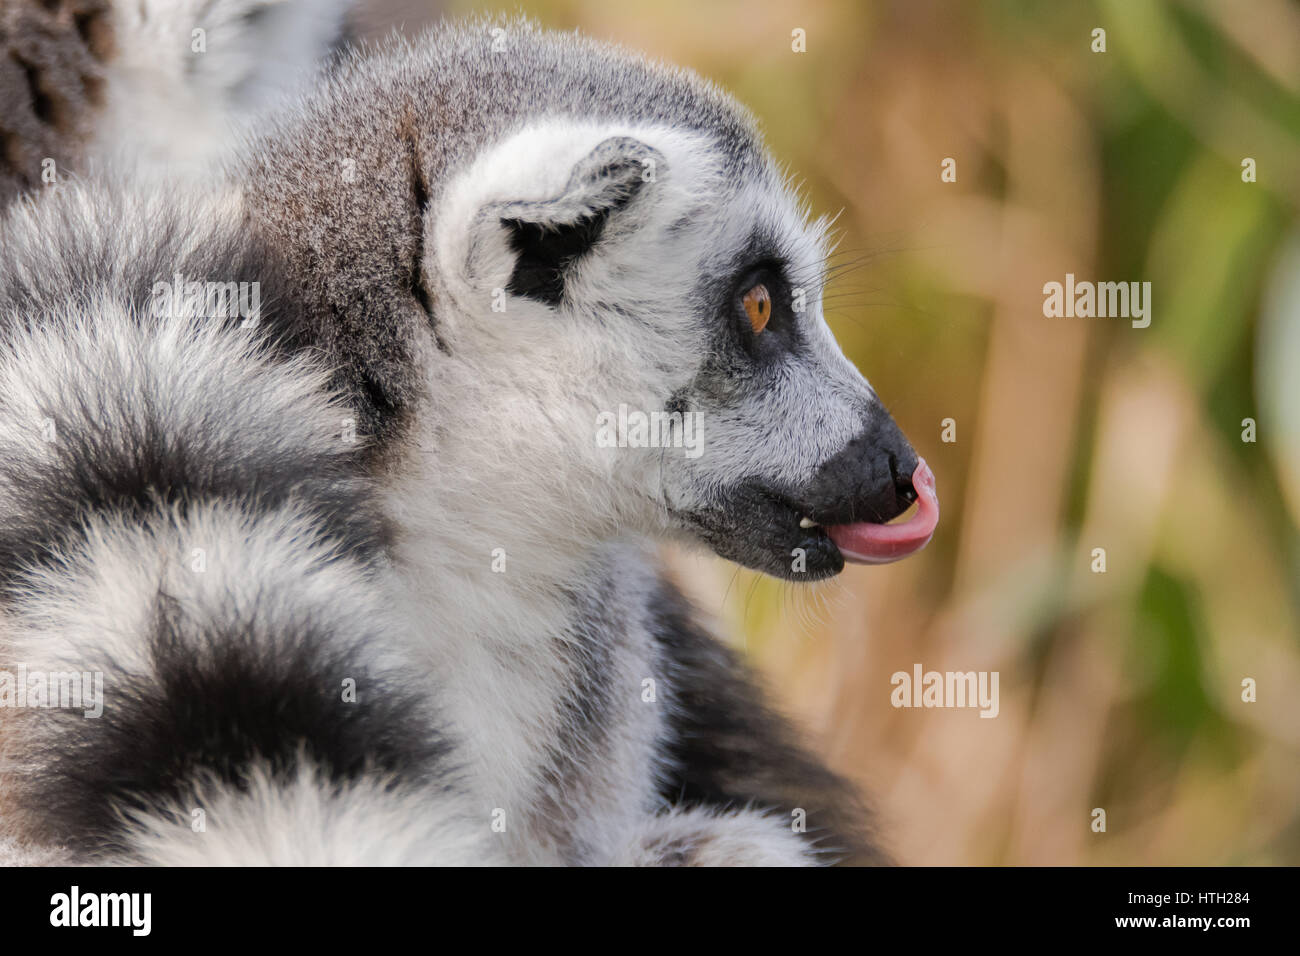 Ring-tailed lemur (Lemur catta) with tongue sticking out. Most familiar large strepsirrhine primate in the family - Stock Image